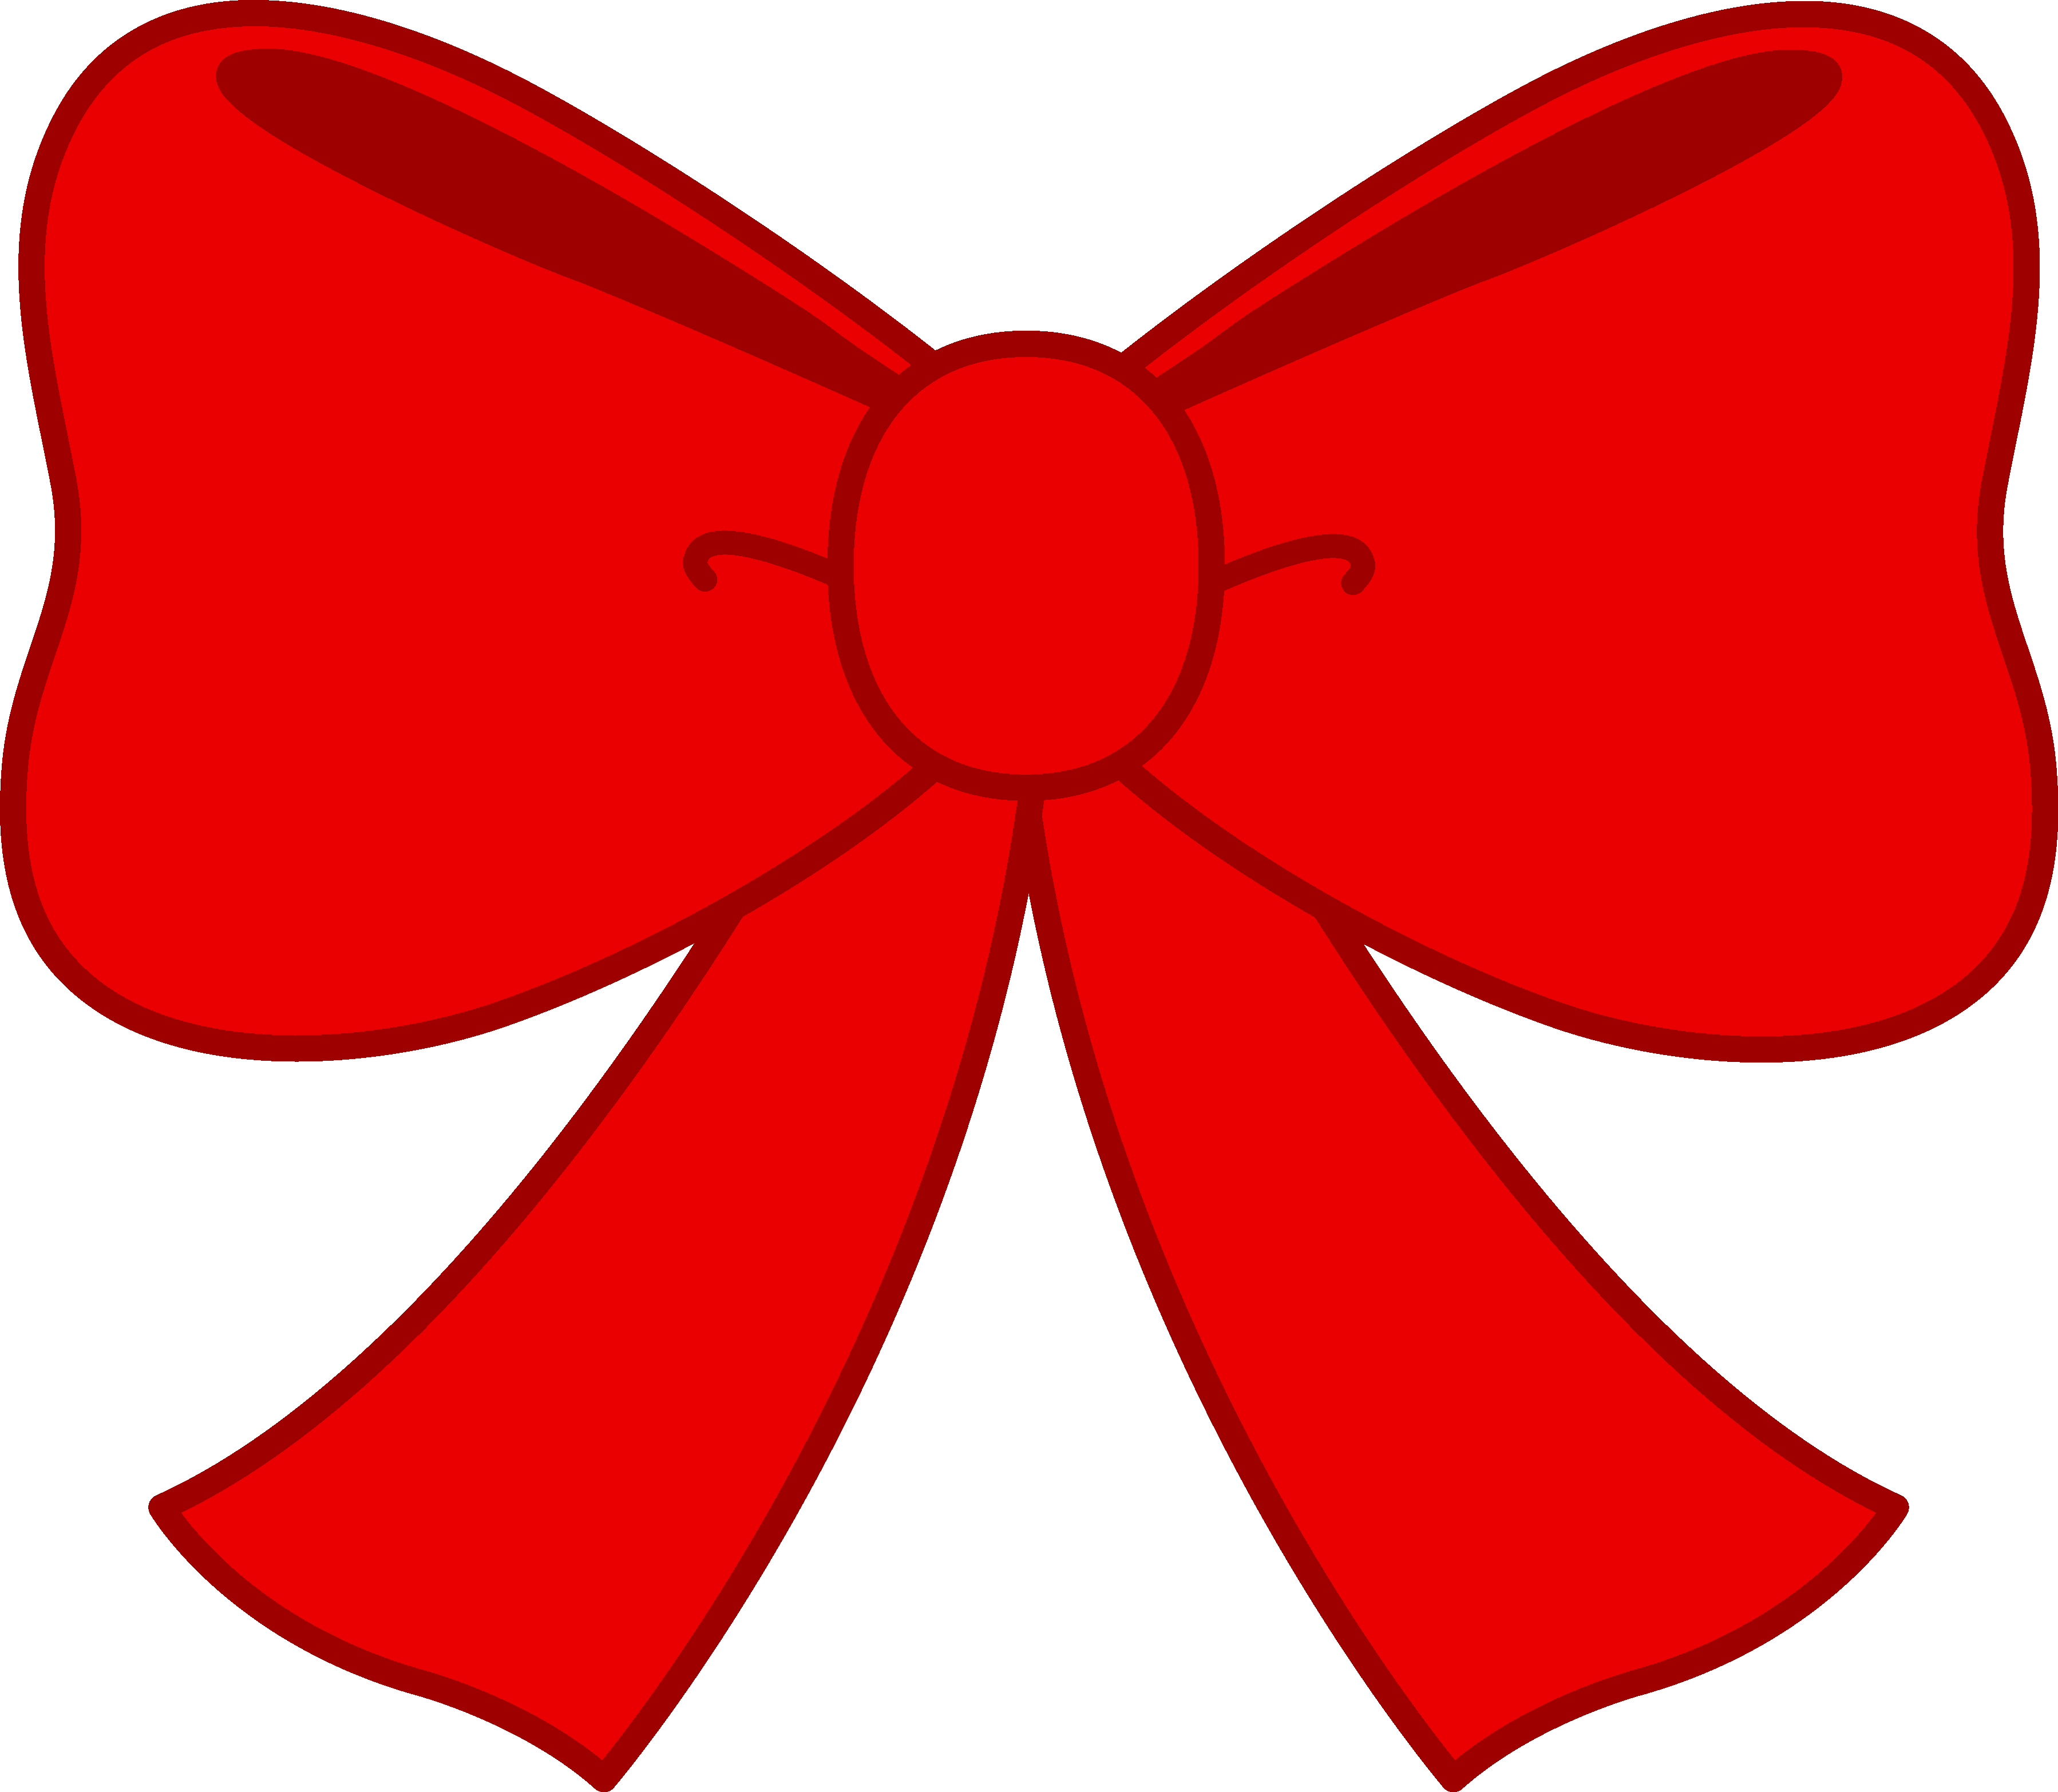 Bows clipart bowknot. Free red bow images